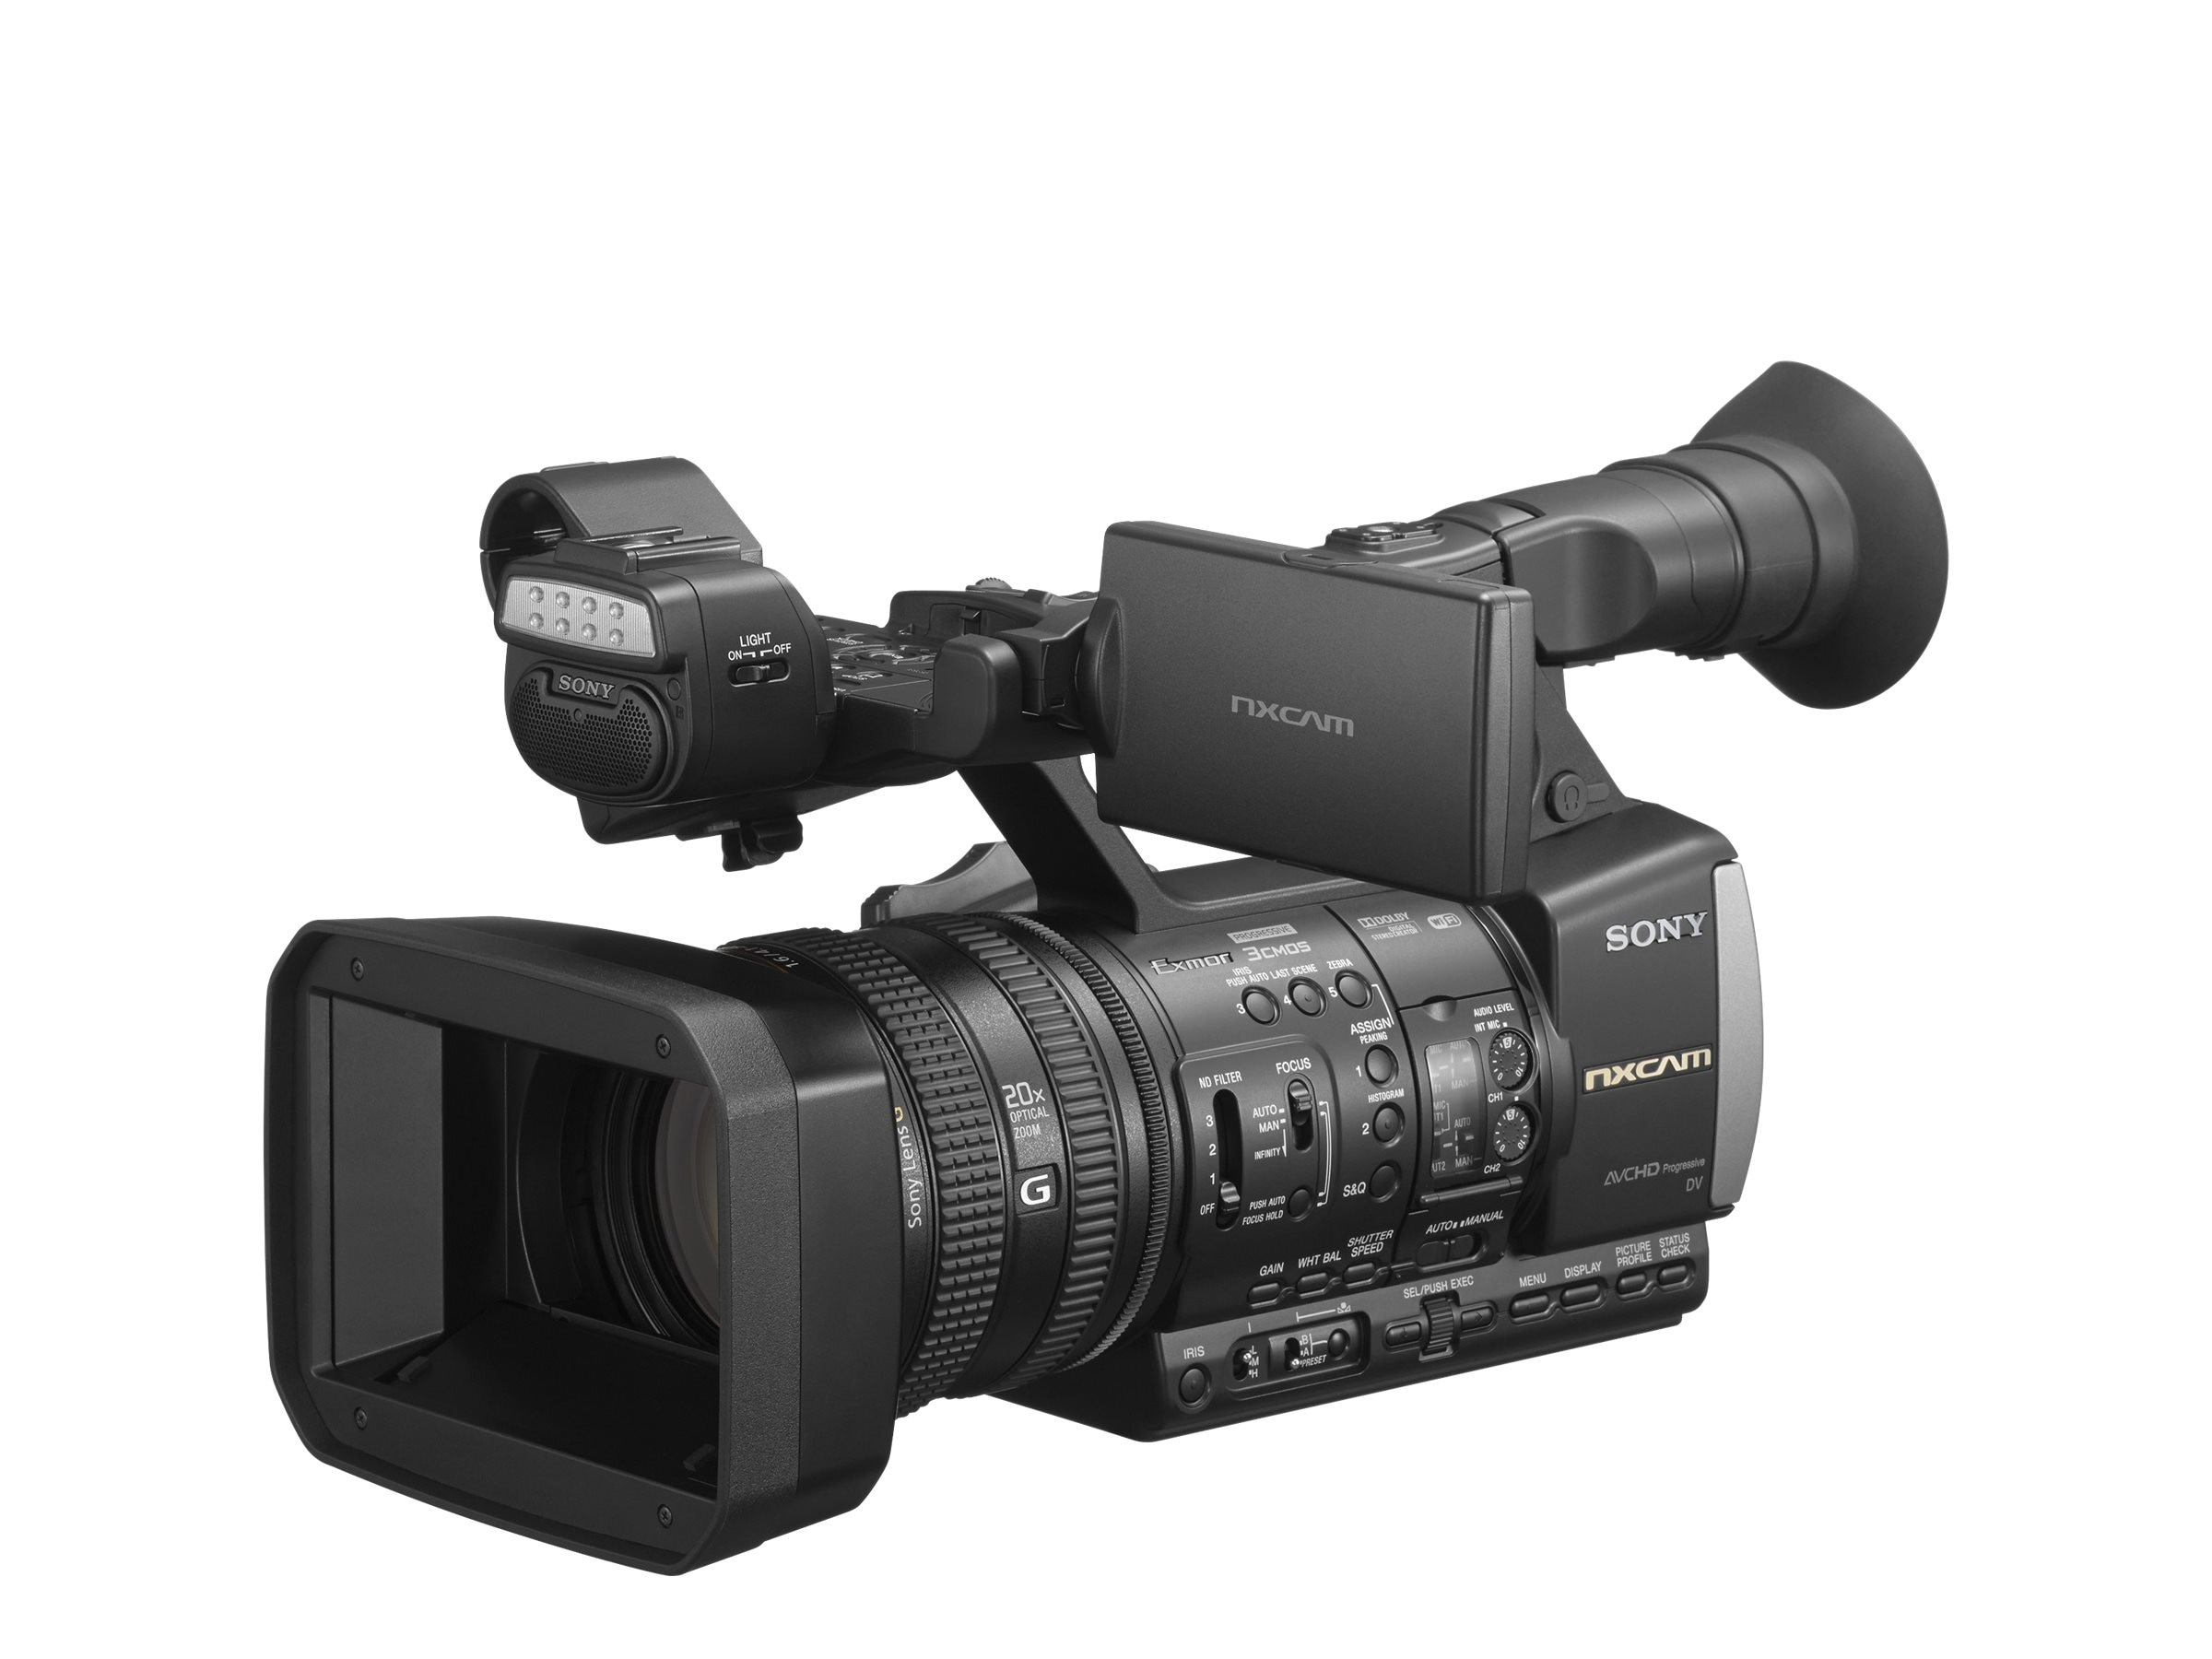 Sony NXCAM 1080p Professional Handheld Camcorder, Black